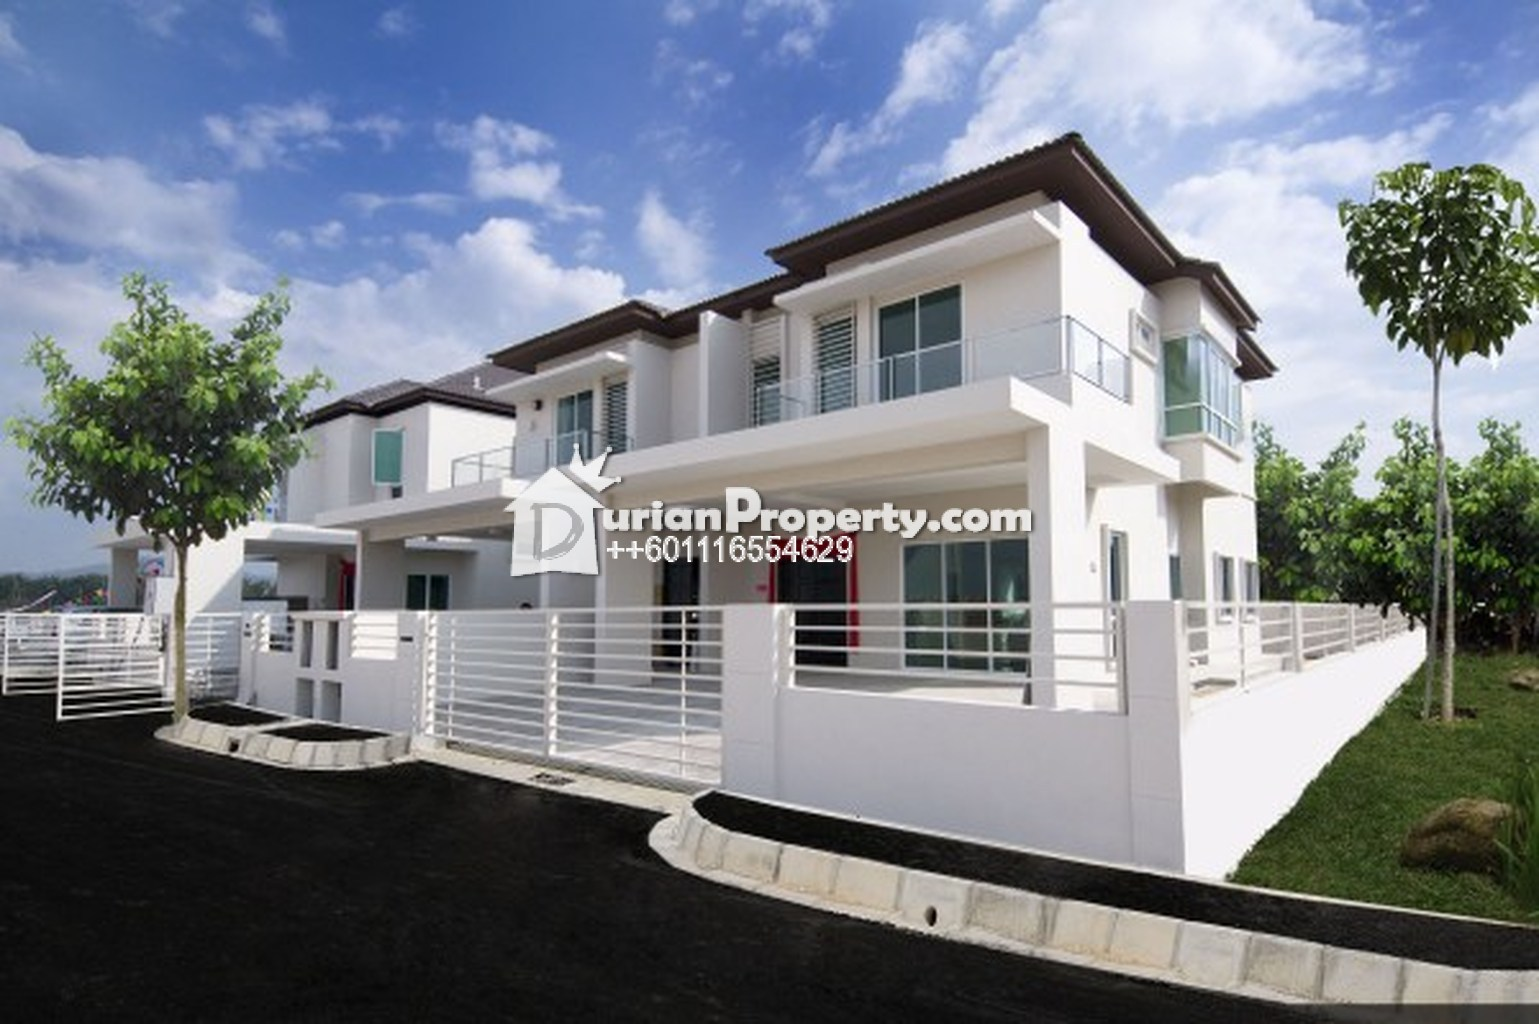 Terrace house for sale at senawang light industrial park for Industrial modern homes for sale